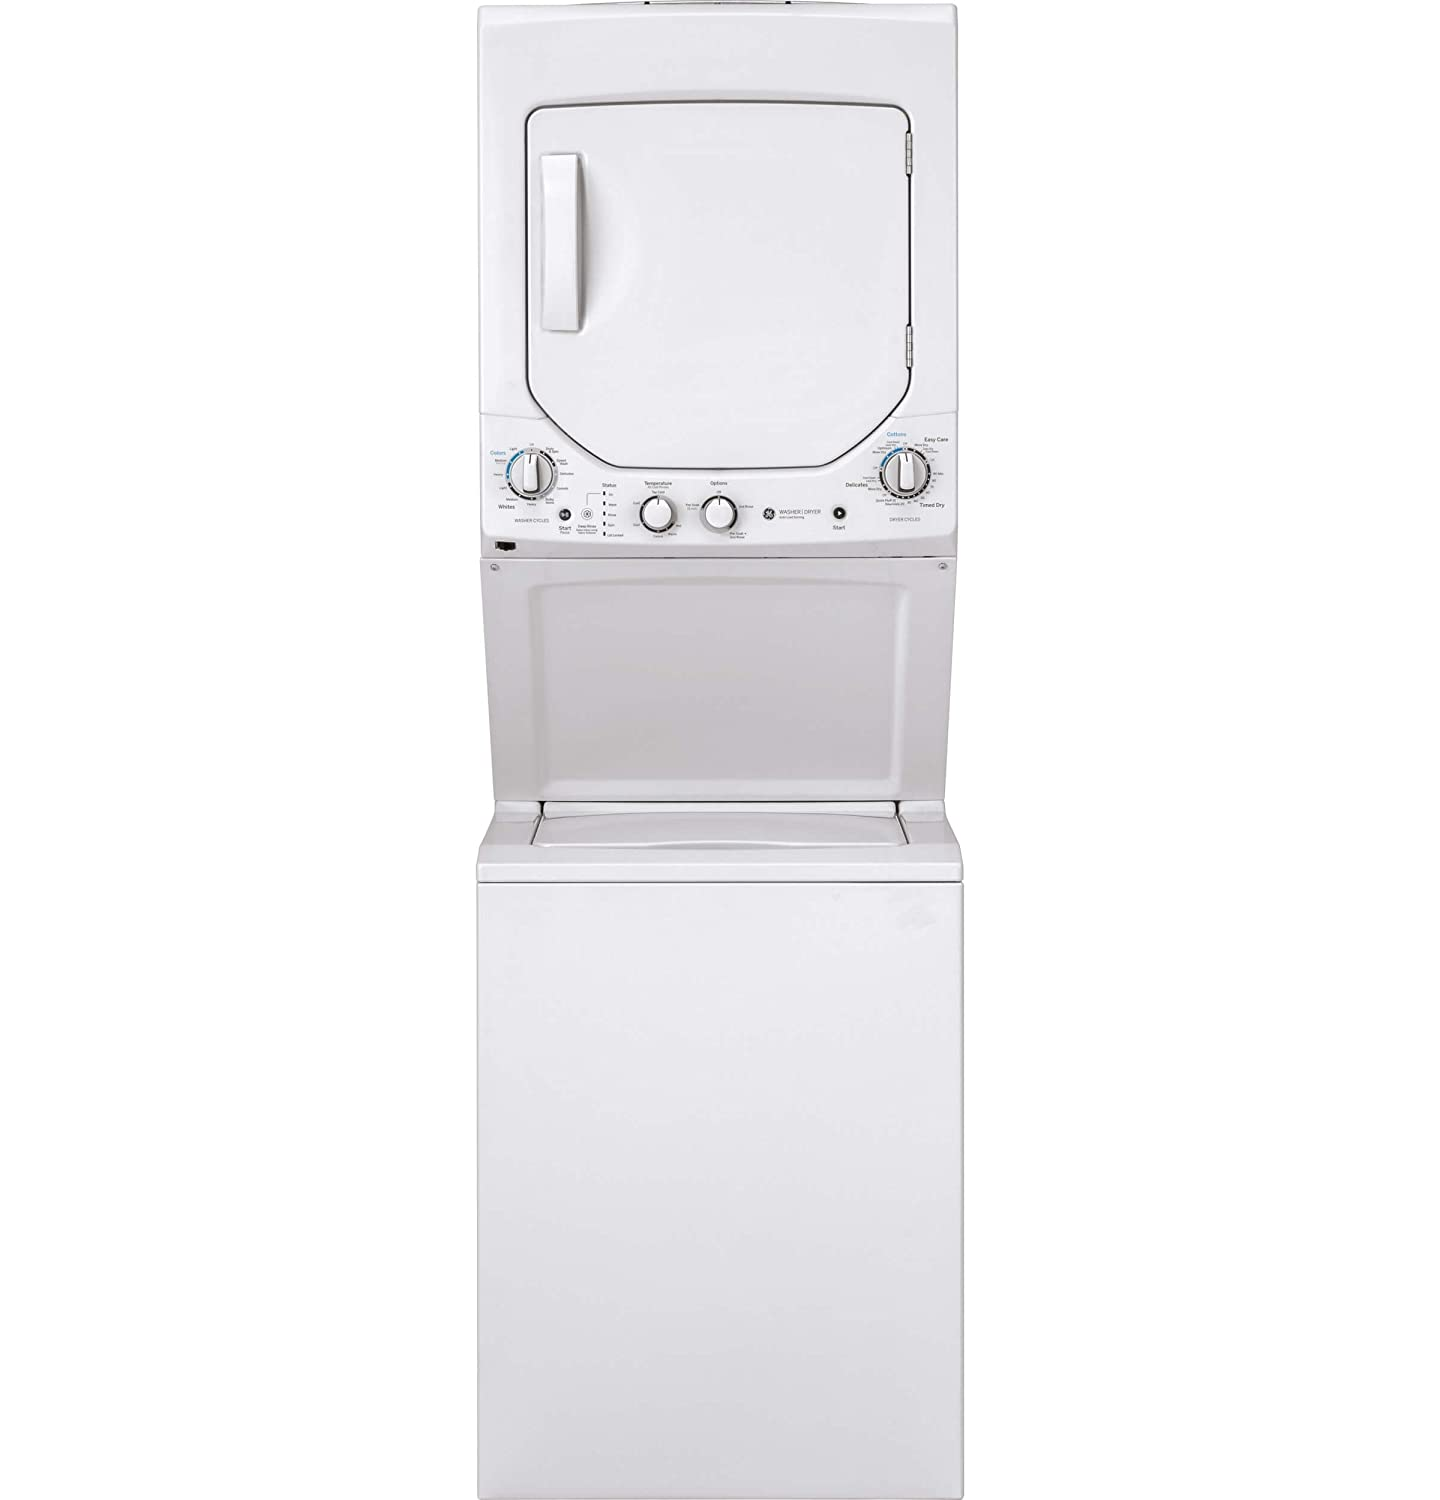 GE GUD24GSSMWW 24 Inch Gas Laundry Center with 2.3 cu. ft. Washer Capacity, in White G.E.